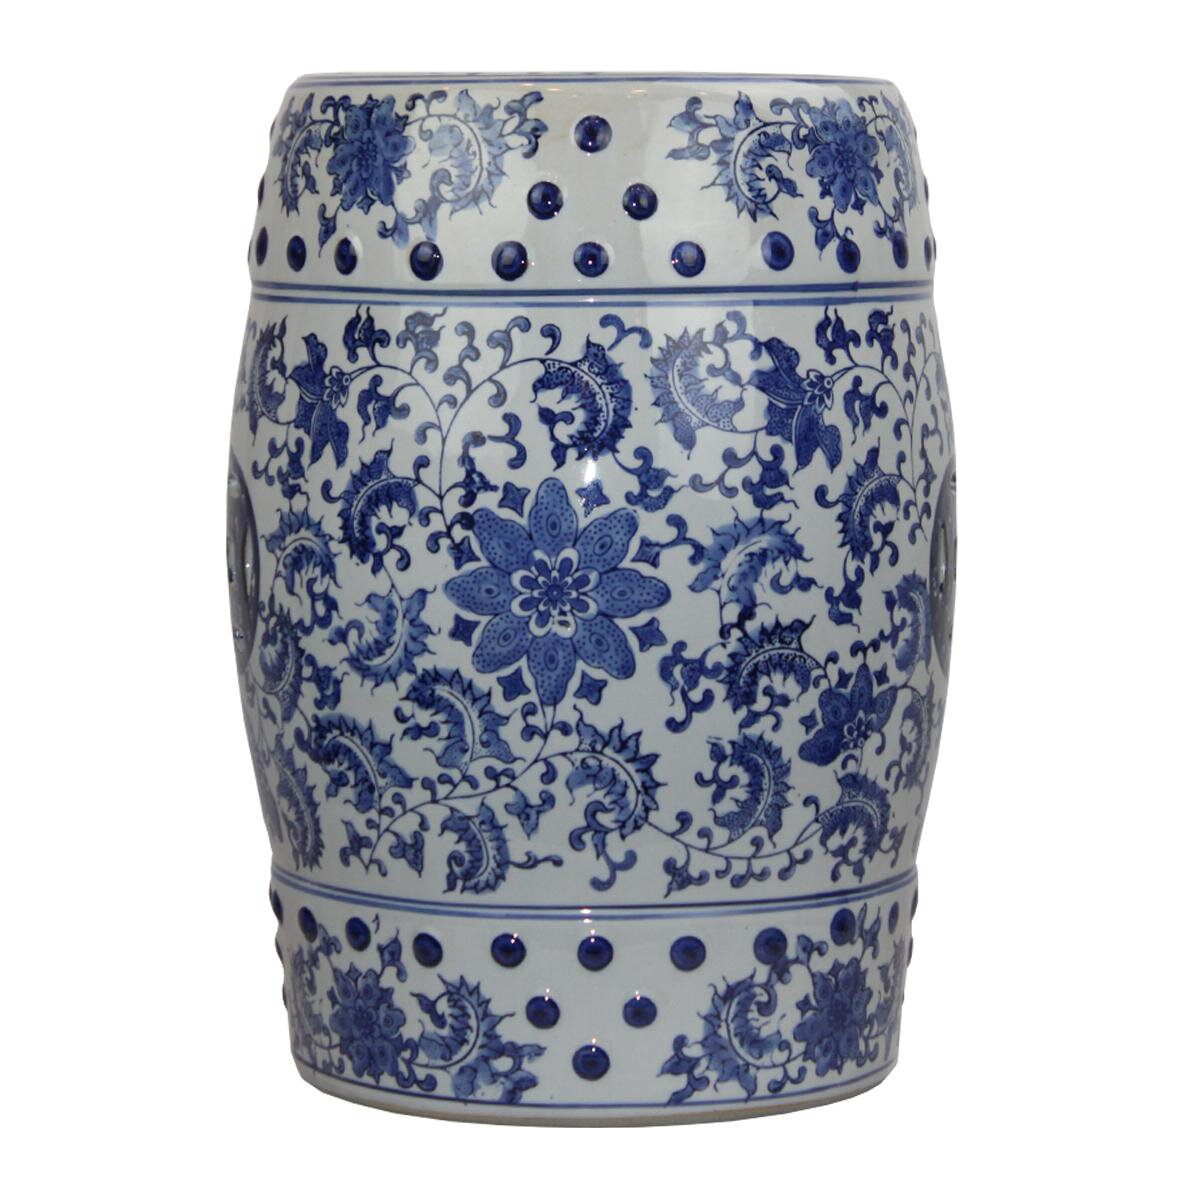 Malcom Modern Contemporary Floral Porcelain Garden Stool In Wiese Cherry Blossom Ceramic Garden Stools (View 10 of 25)